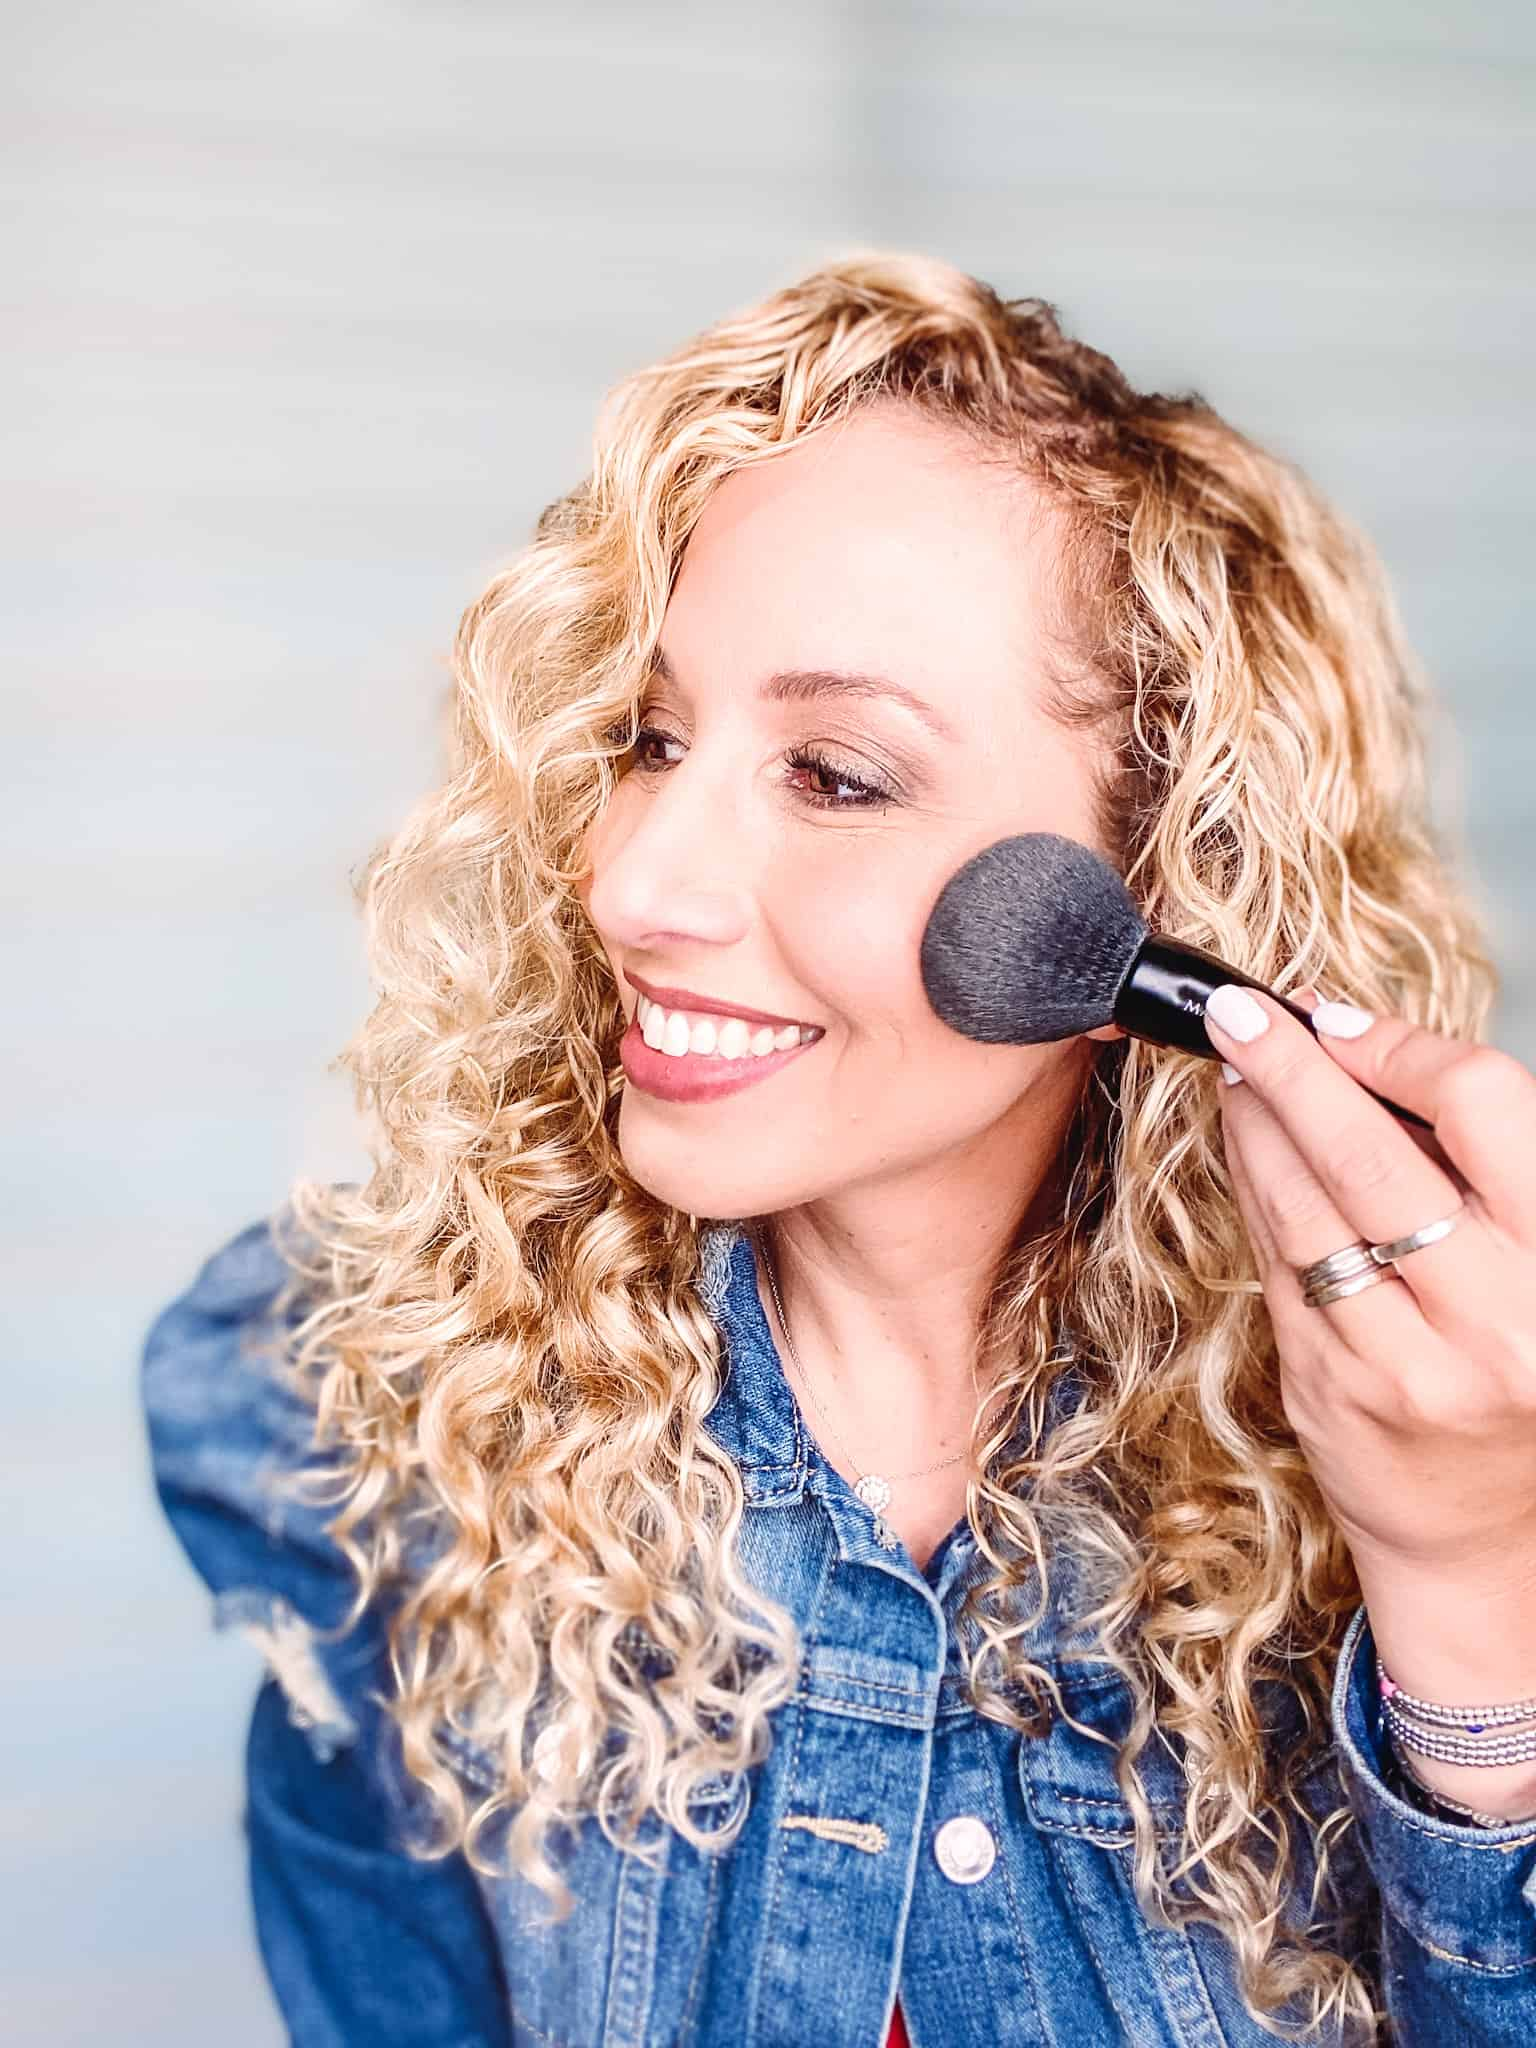 Does your makeup seem to disappear after a few hours? Does it melt? Here are the top tips so your makeup lasts all day